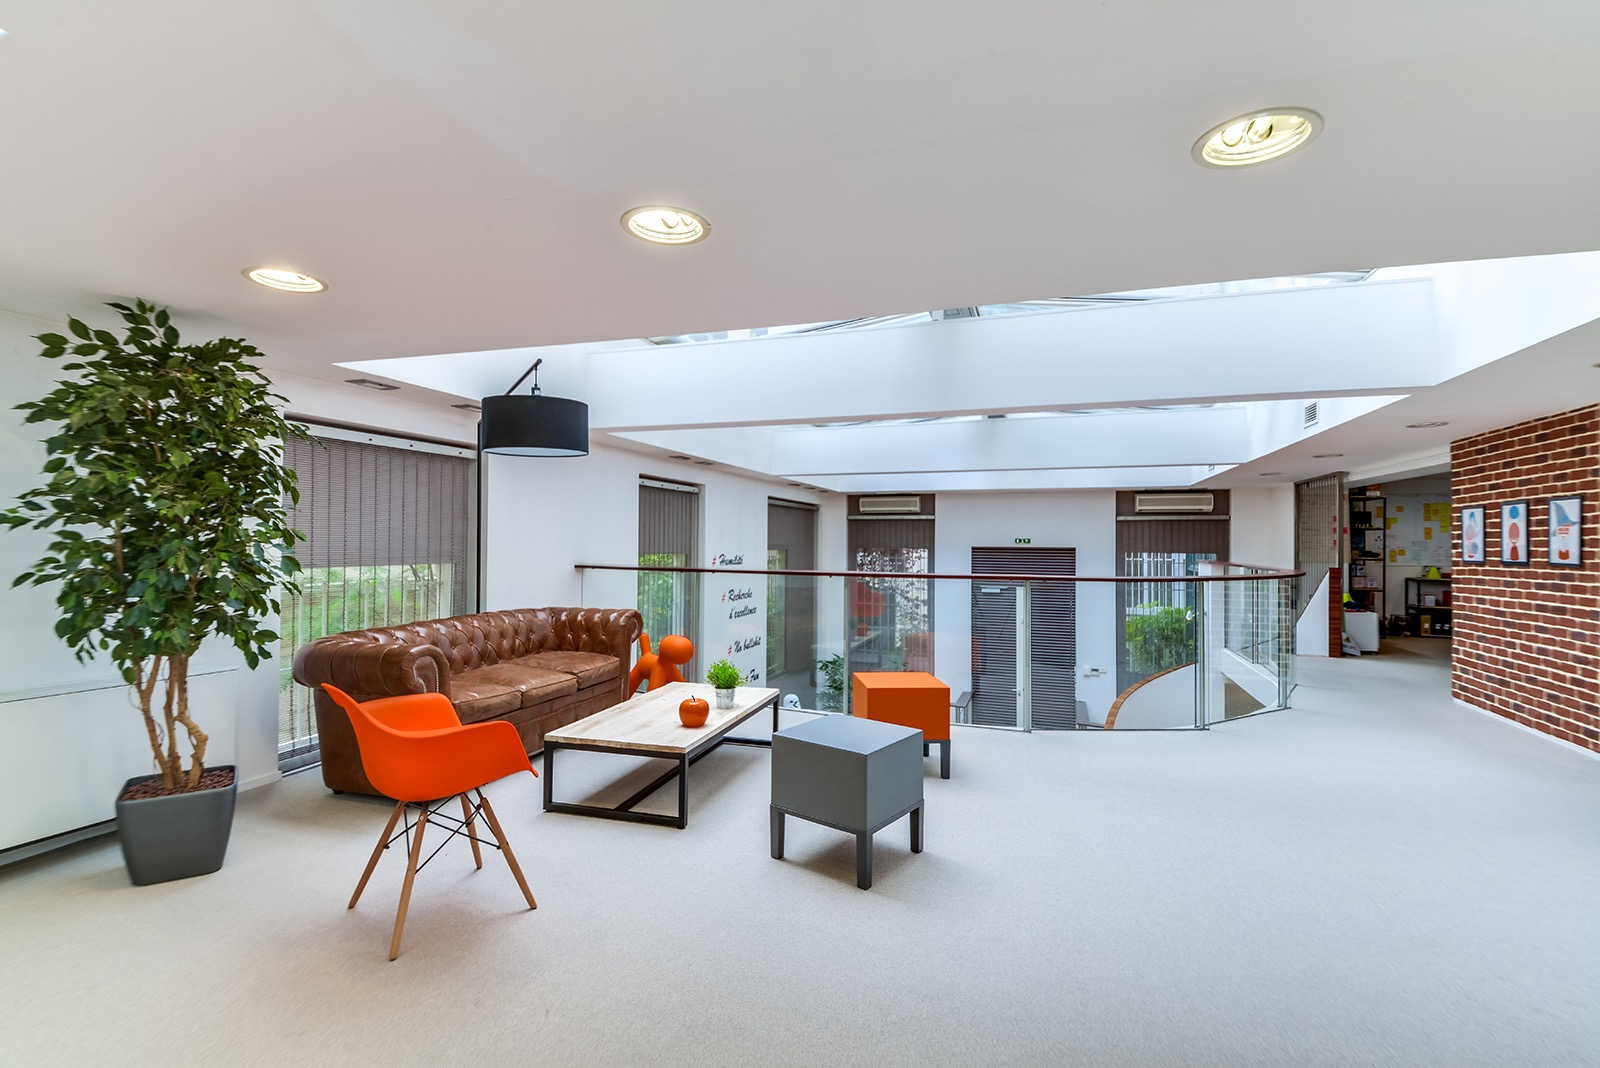 benext-office-paris-11